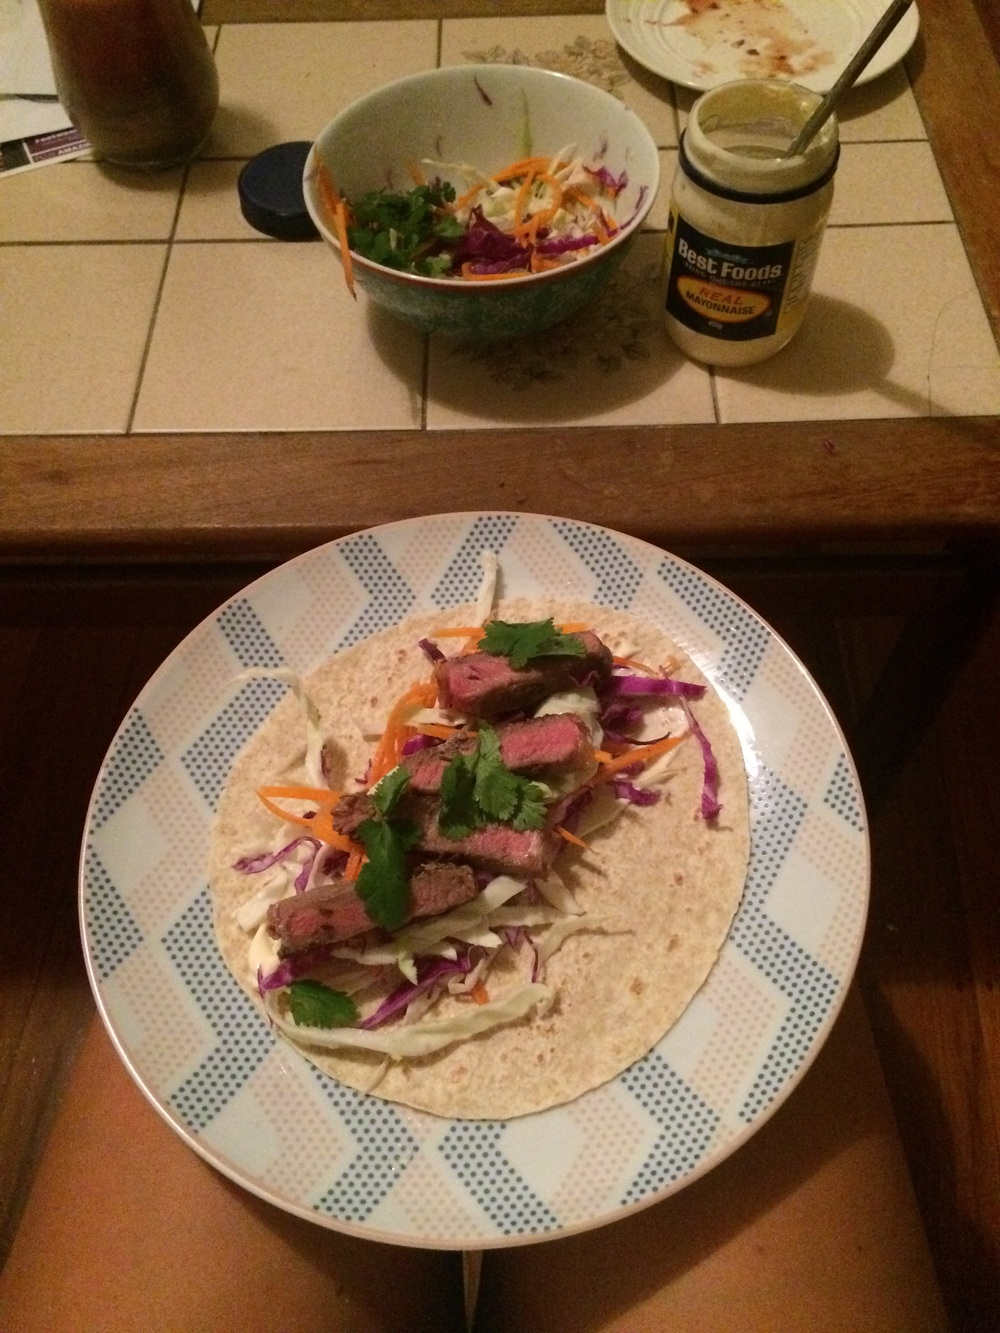 One of my delicious tacos feat. A photo bomb from my mate Best Foods.